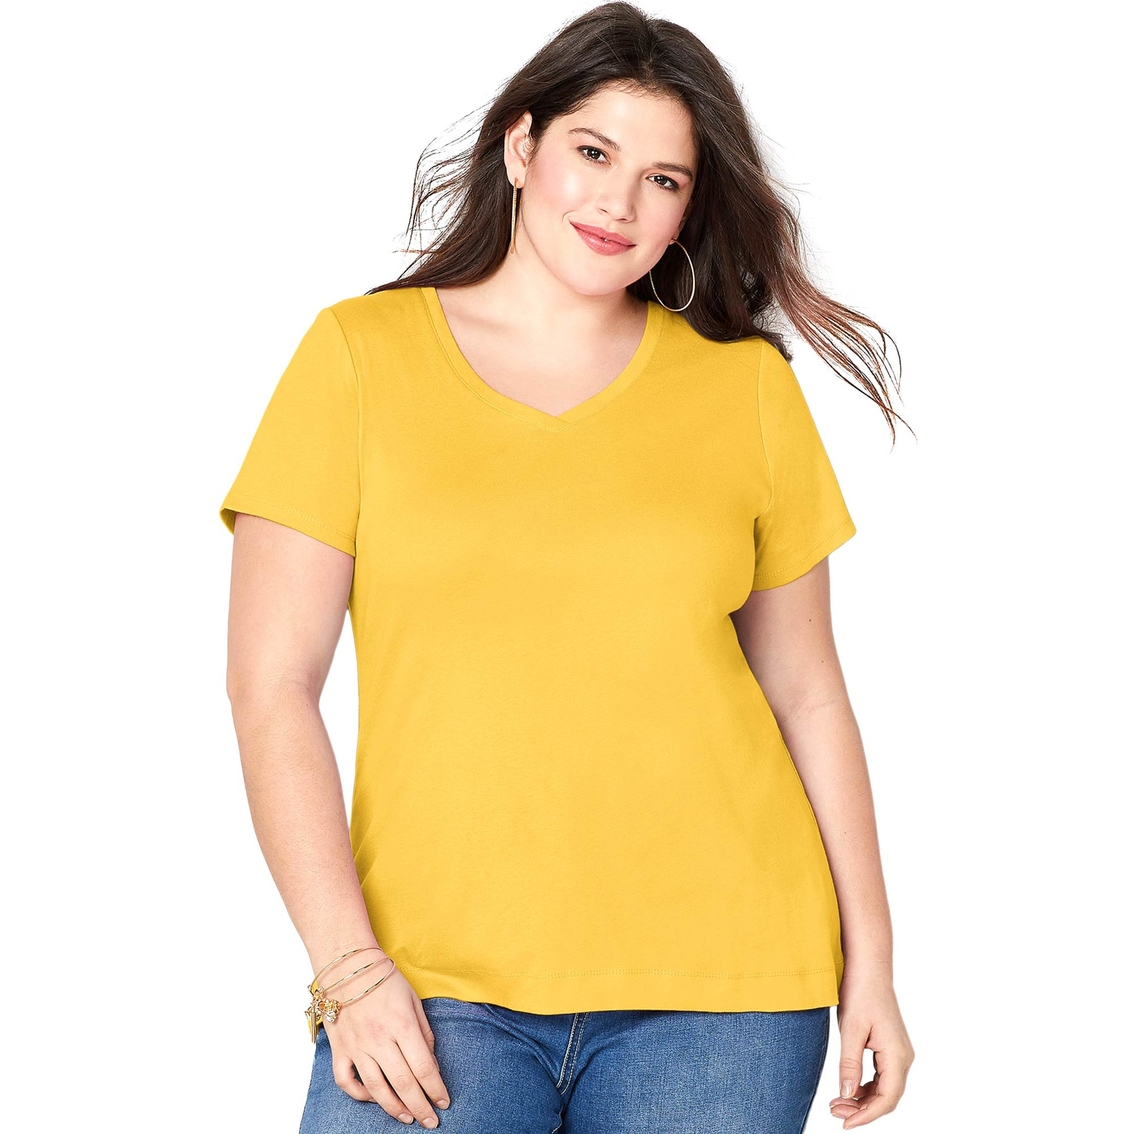 f1f7c18b Avenue Plus Size Solid V-neck Tee   T-shirts   Apparel   Shop The ...